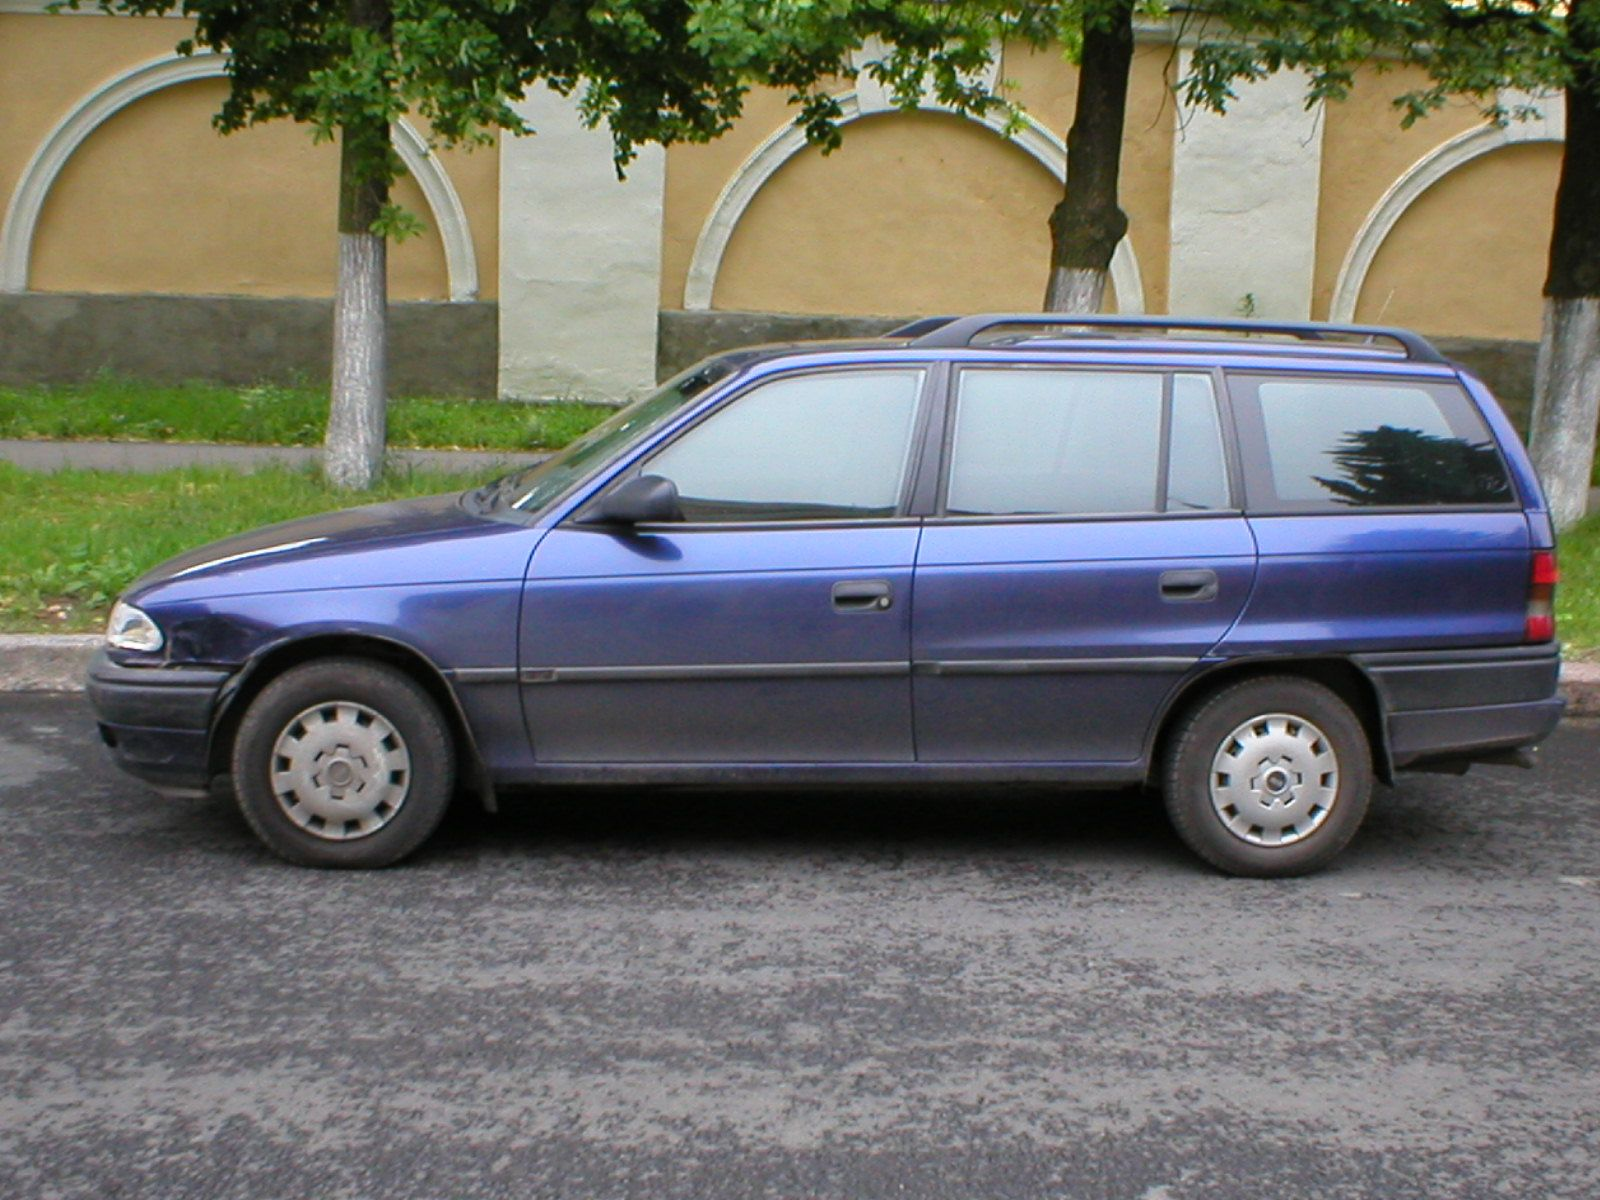 opel astra f 1995 wiring diagram for bathroom fan with timer caravan  pictures information and